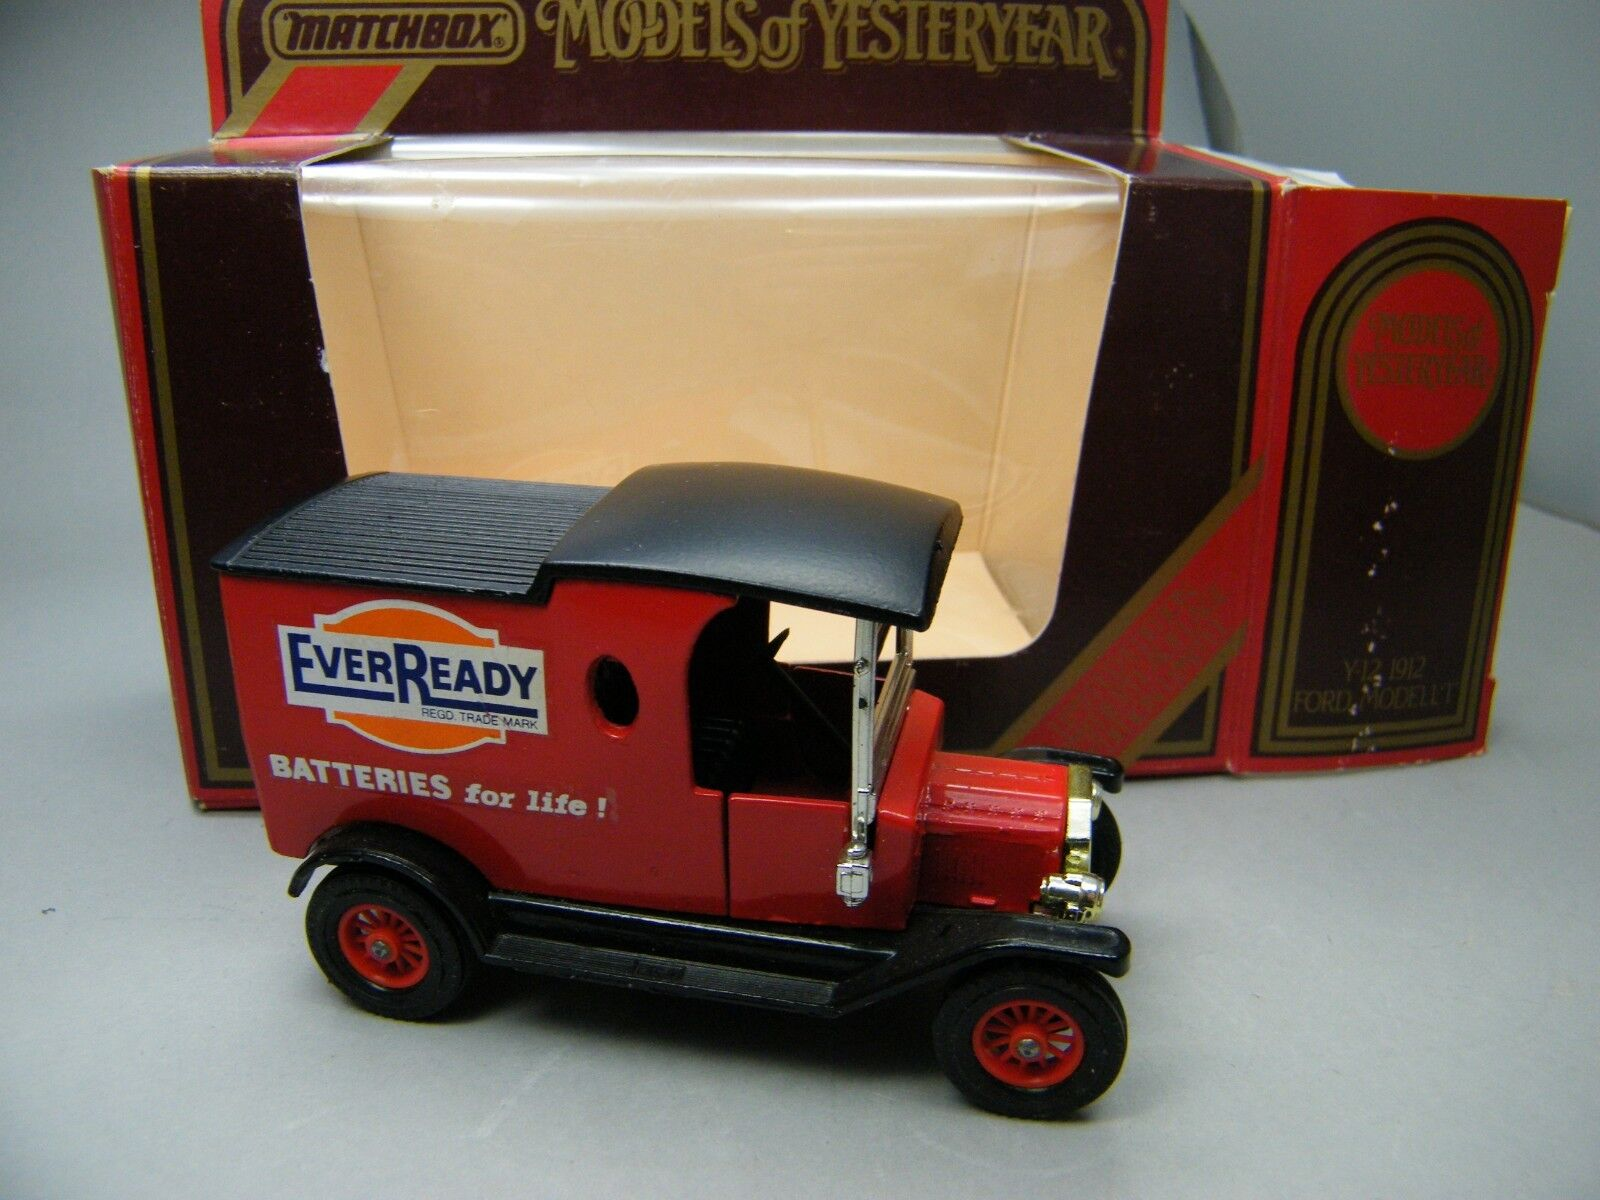 MATCHBOX Moy c2 y-12 FORD T EVER READY mano pattern Lunch Time molto raramente OVP k09